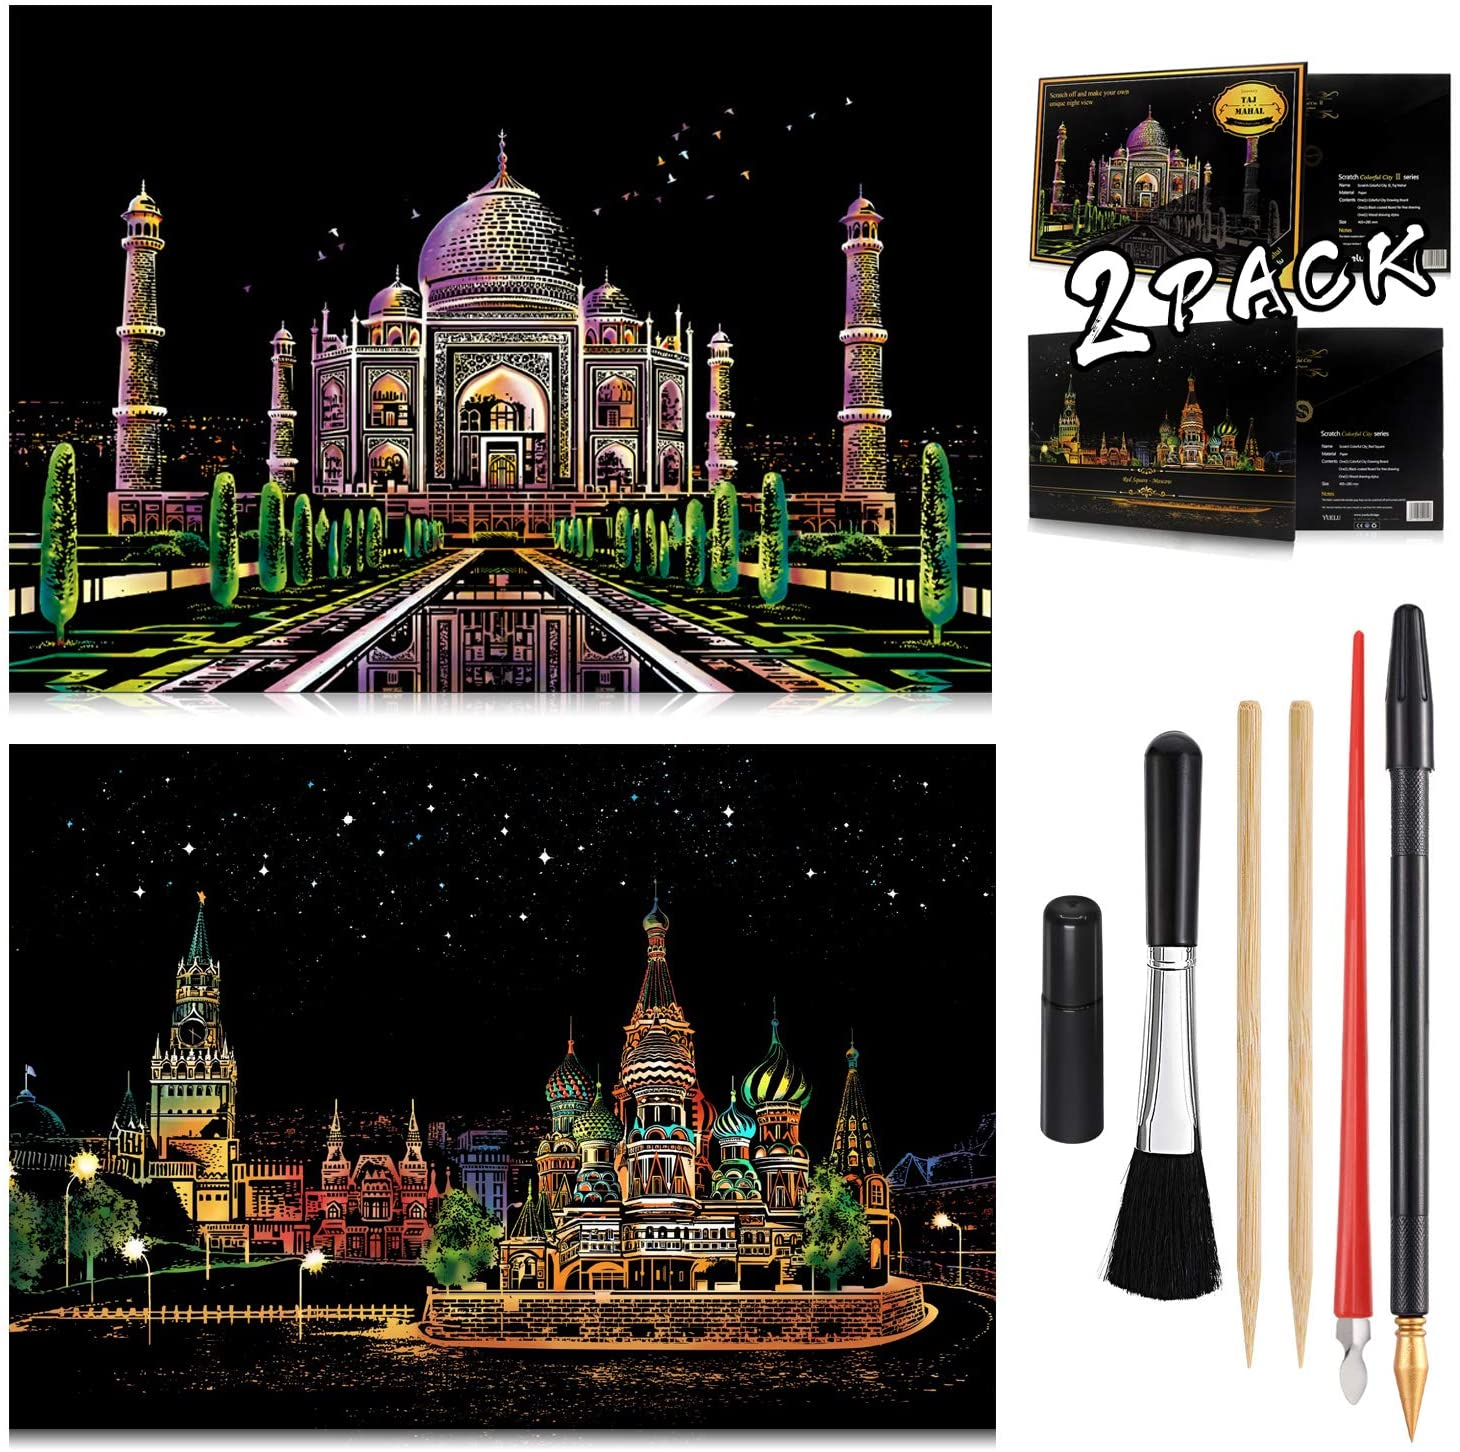 Scratch Art Rainbow Painting Paper 16'' x 11.2'' Sketch Pad Night View Scratchboard for Kids & Adults, Engraving & Craft Set, Scratch Painting Gift, 2 Pack with 6 Tools (Red Square - Taj Mahal)